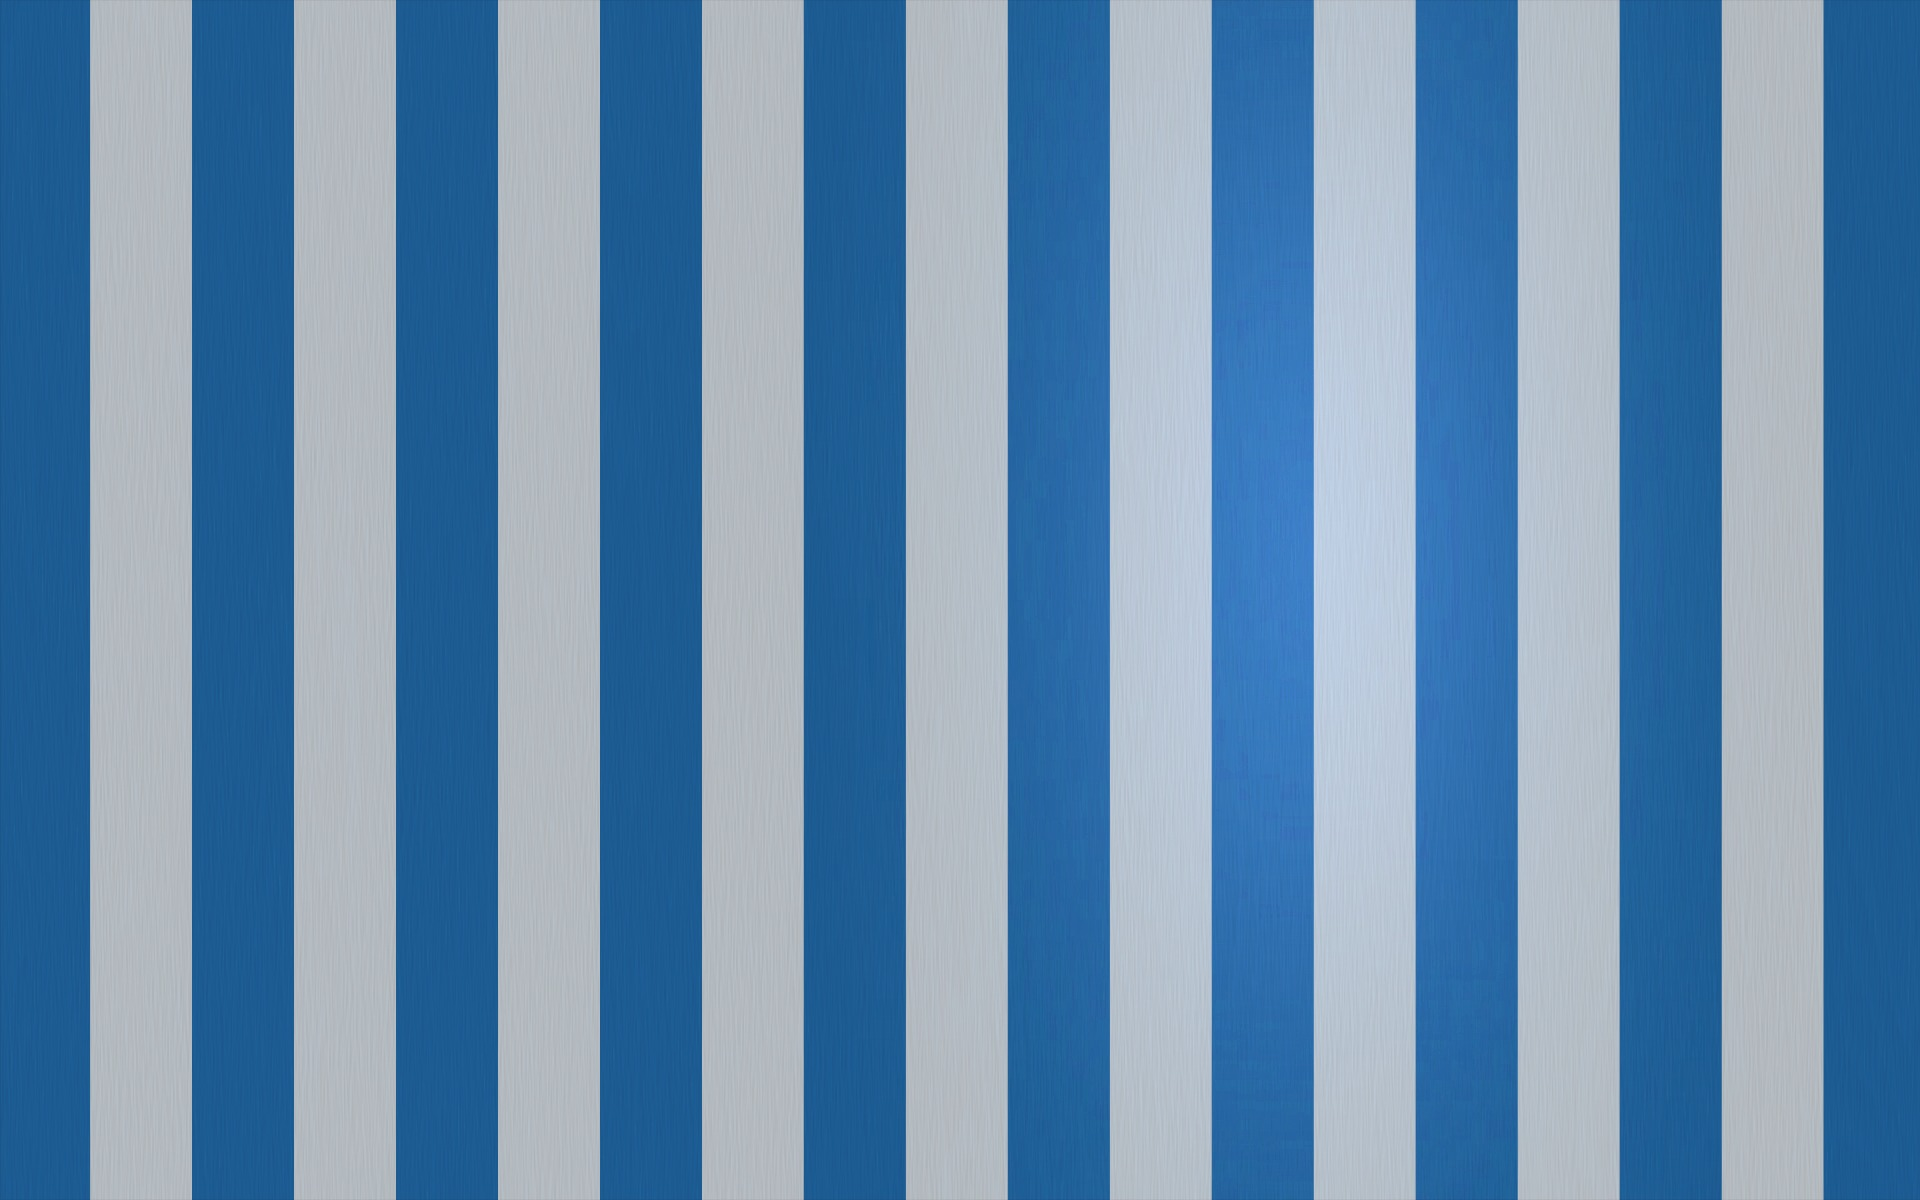 blue and white striped wallpaper wallpapersafari